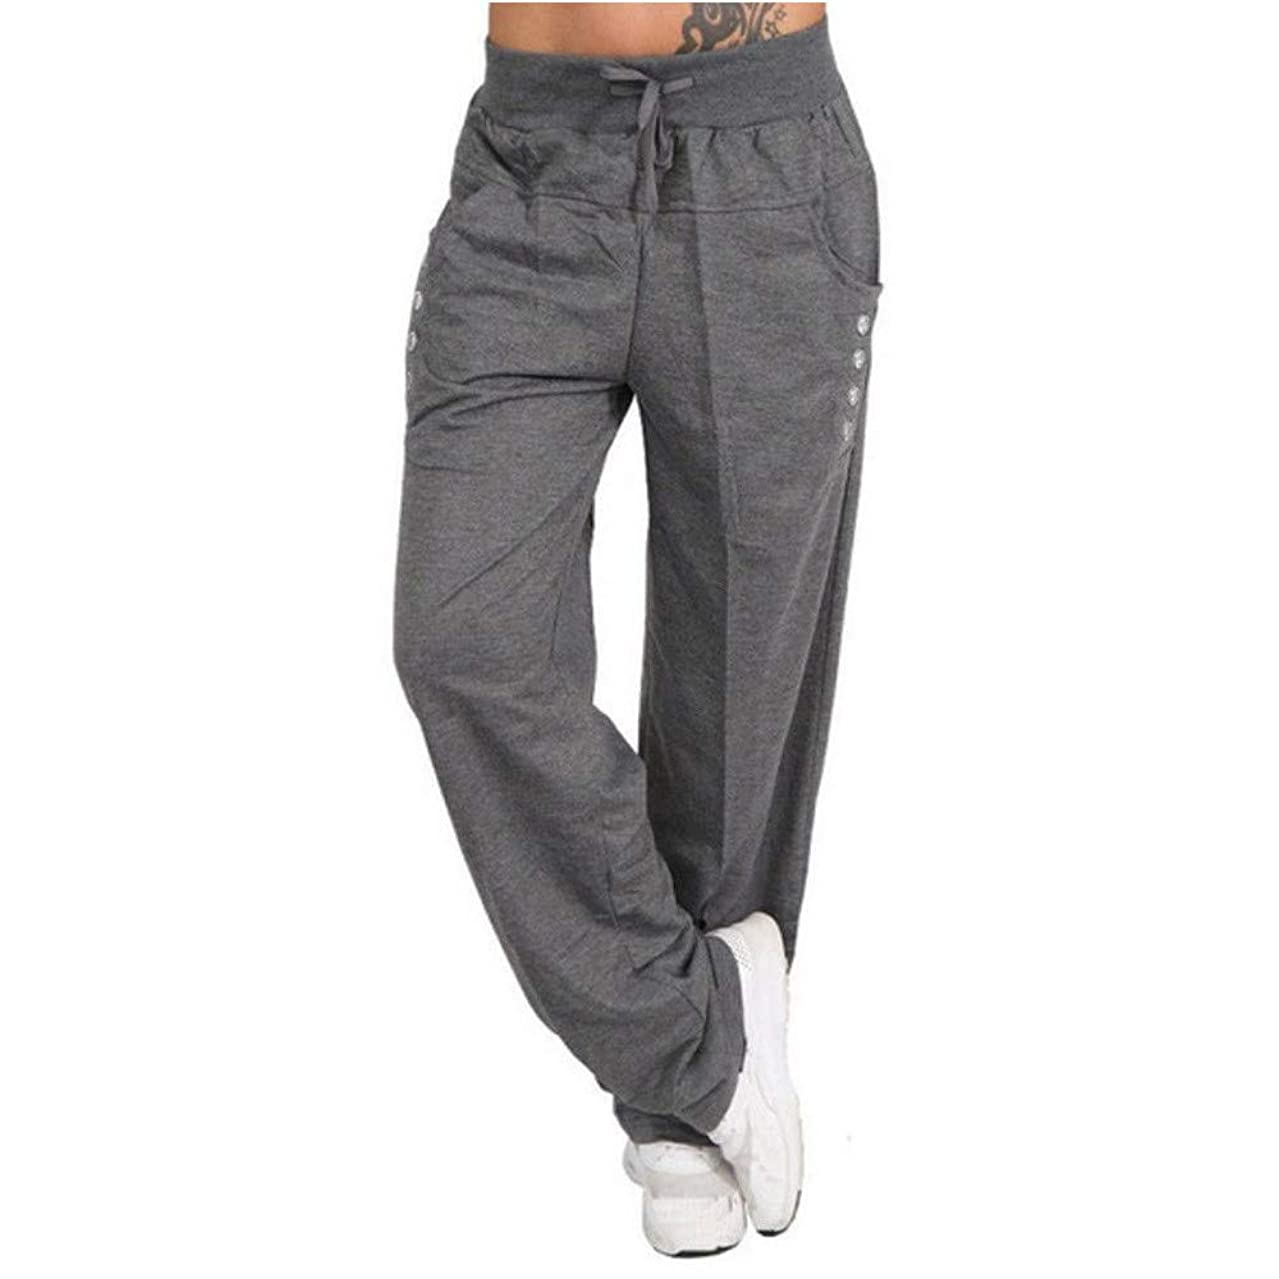 SMALLE??? 2019 Womens Trousers,Solid Color Elasticity Wide Leg Yoga Sports Loose Casual Long Pants